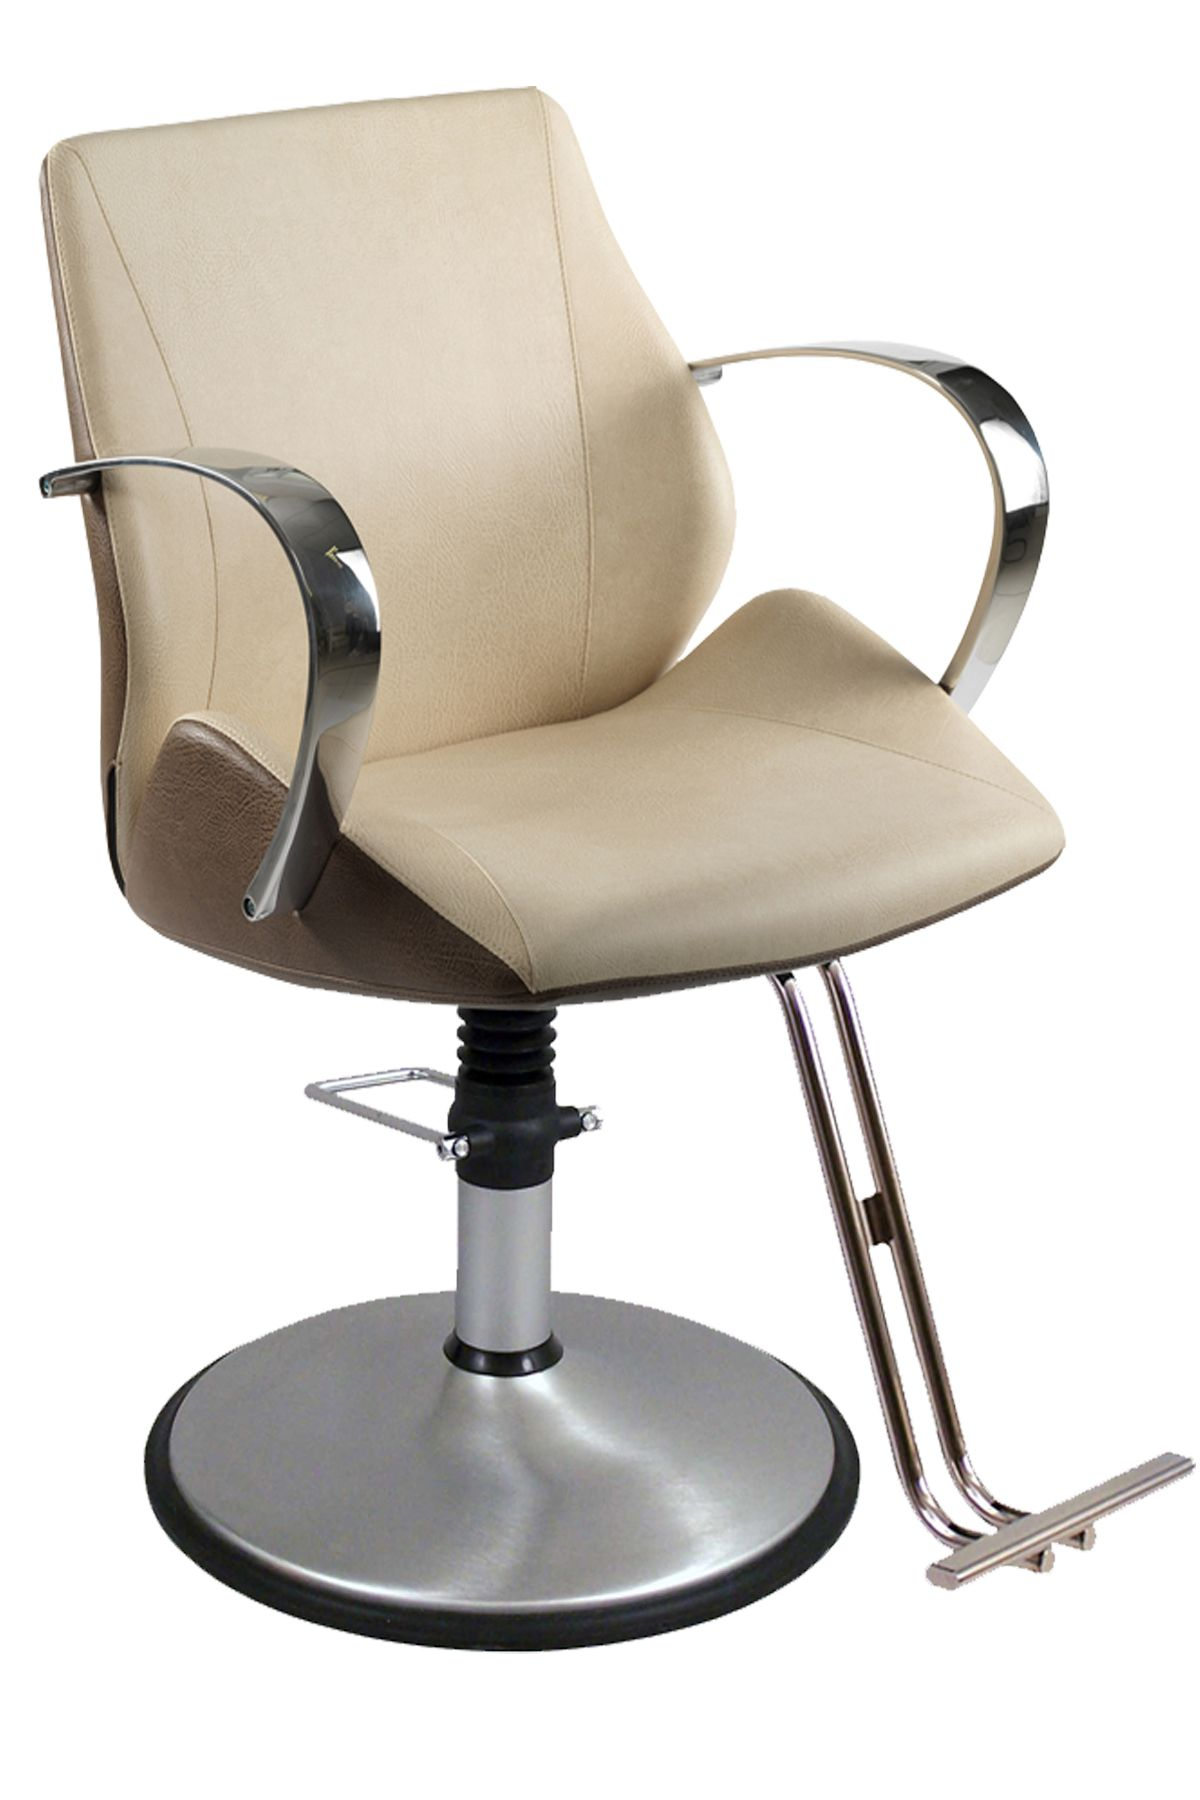 Belvedere Maletti Styling Chair In 2020 Chair Style Chair